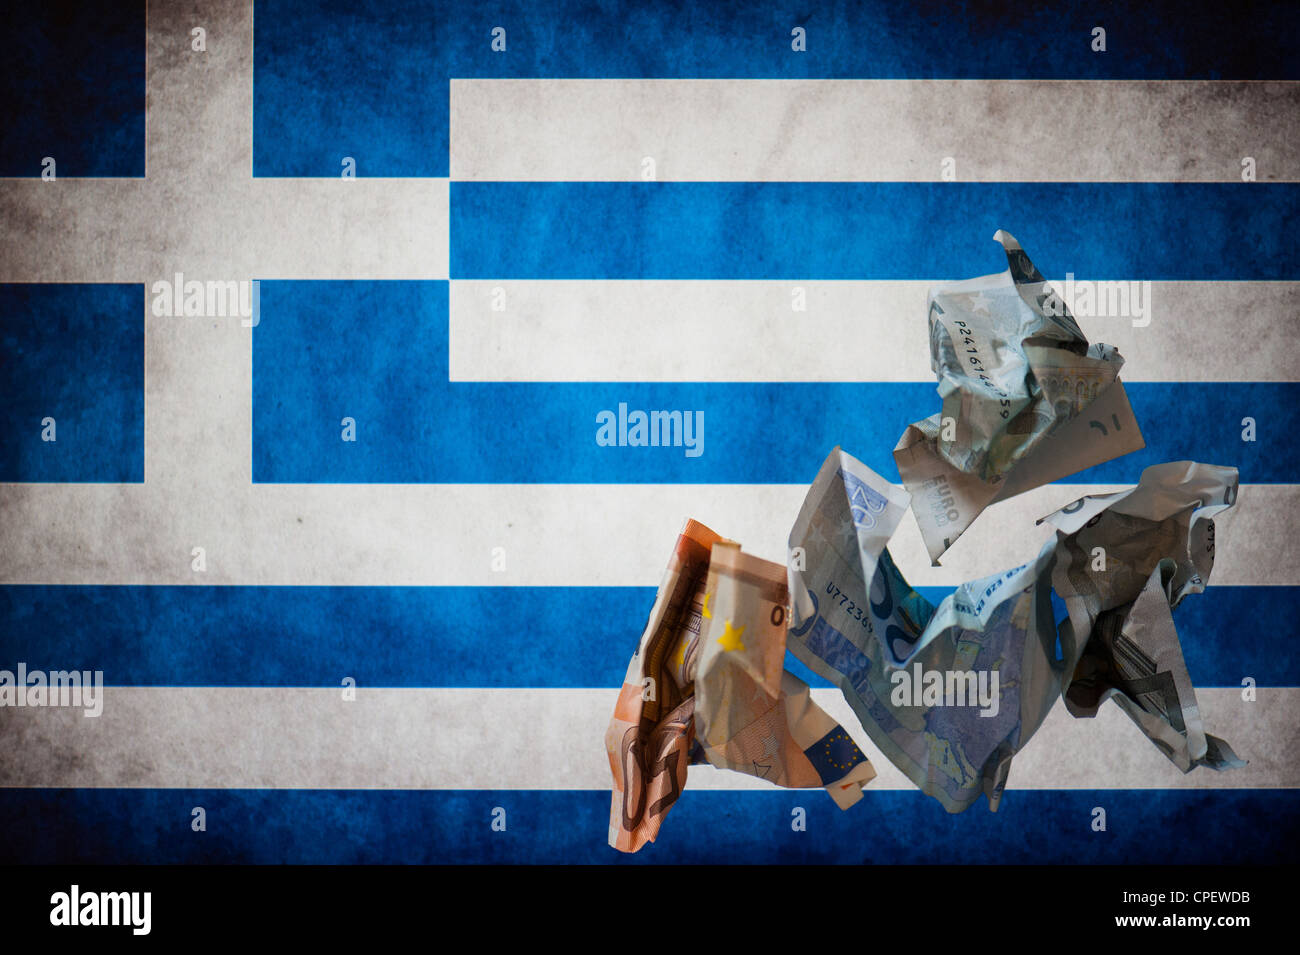 Wrinkled euro notes(50, 20, 5) in front of the Greek flag - Stock Image